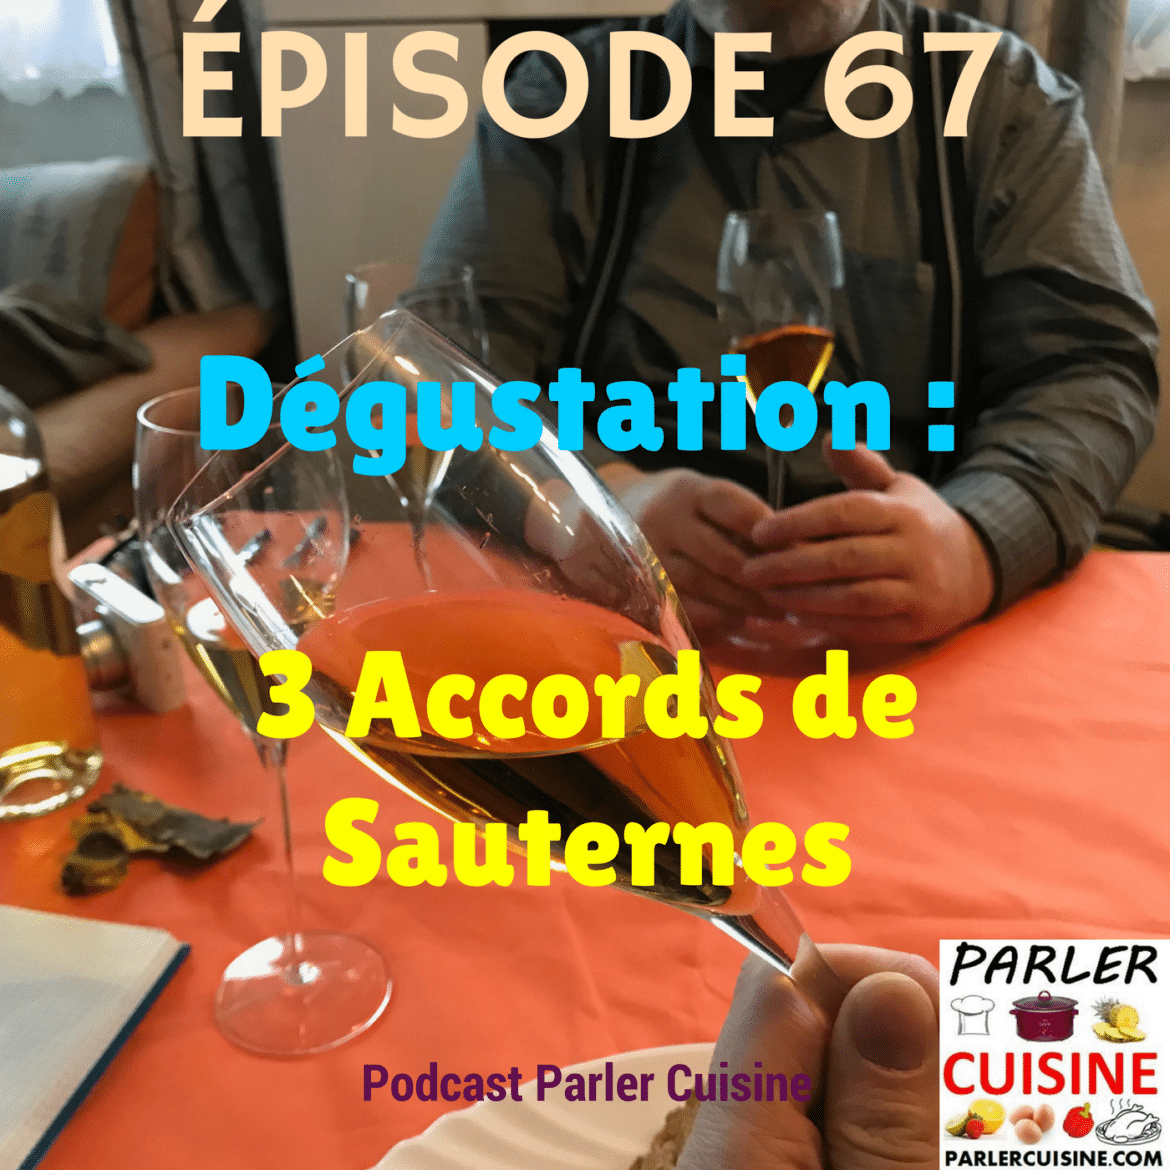 Épisode 67 : 3 Accords de Sauternes